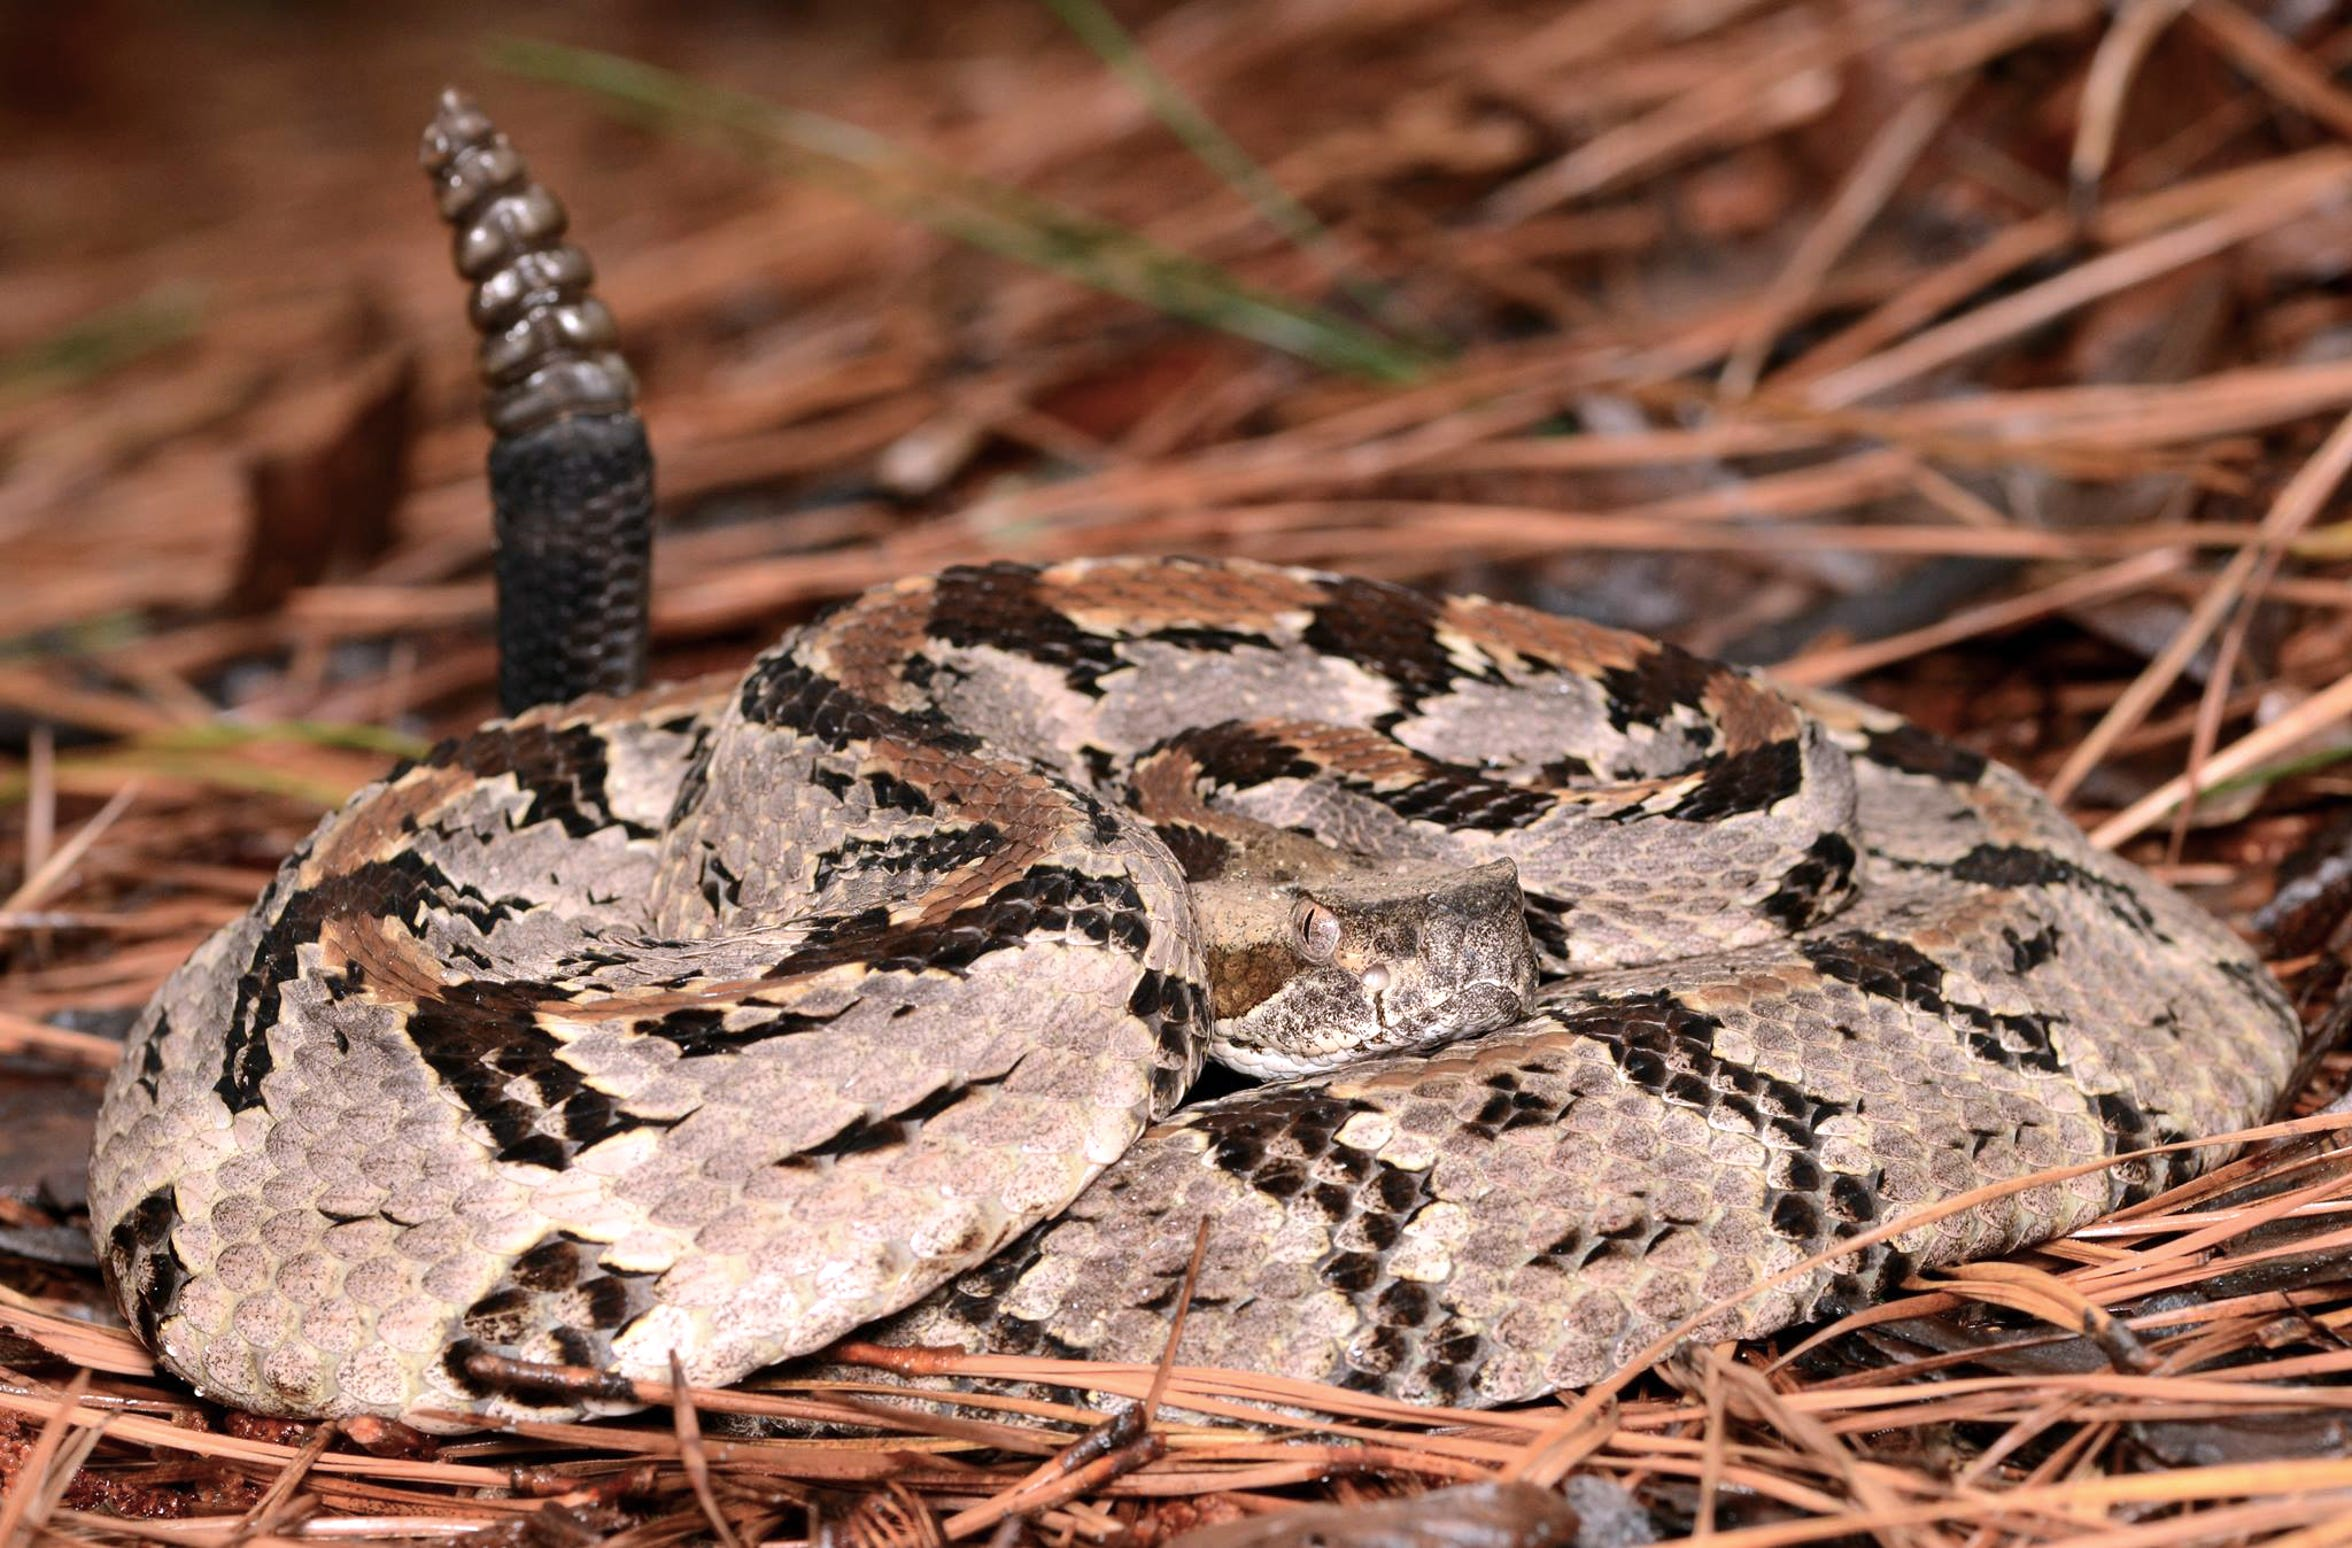 A man posted photos on Facebook of timber rattlers he had killed. Game wardens tracked him down and issued citations for killing a protected species.